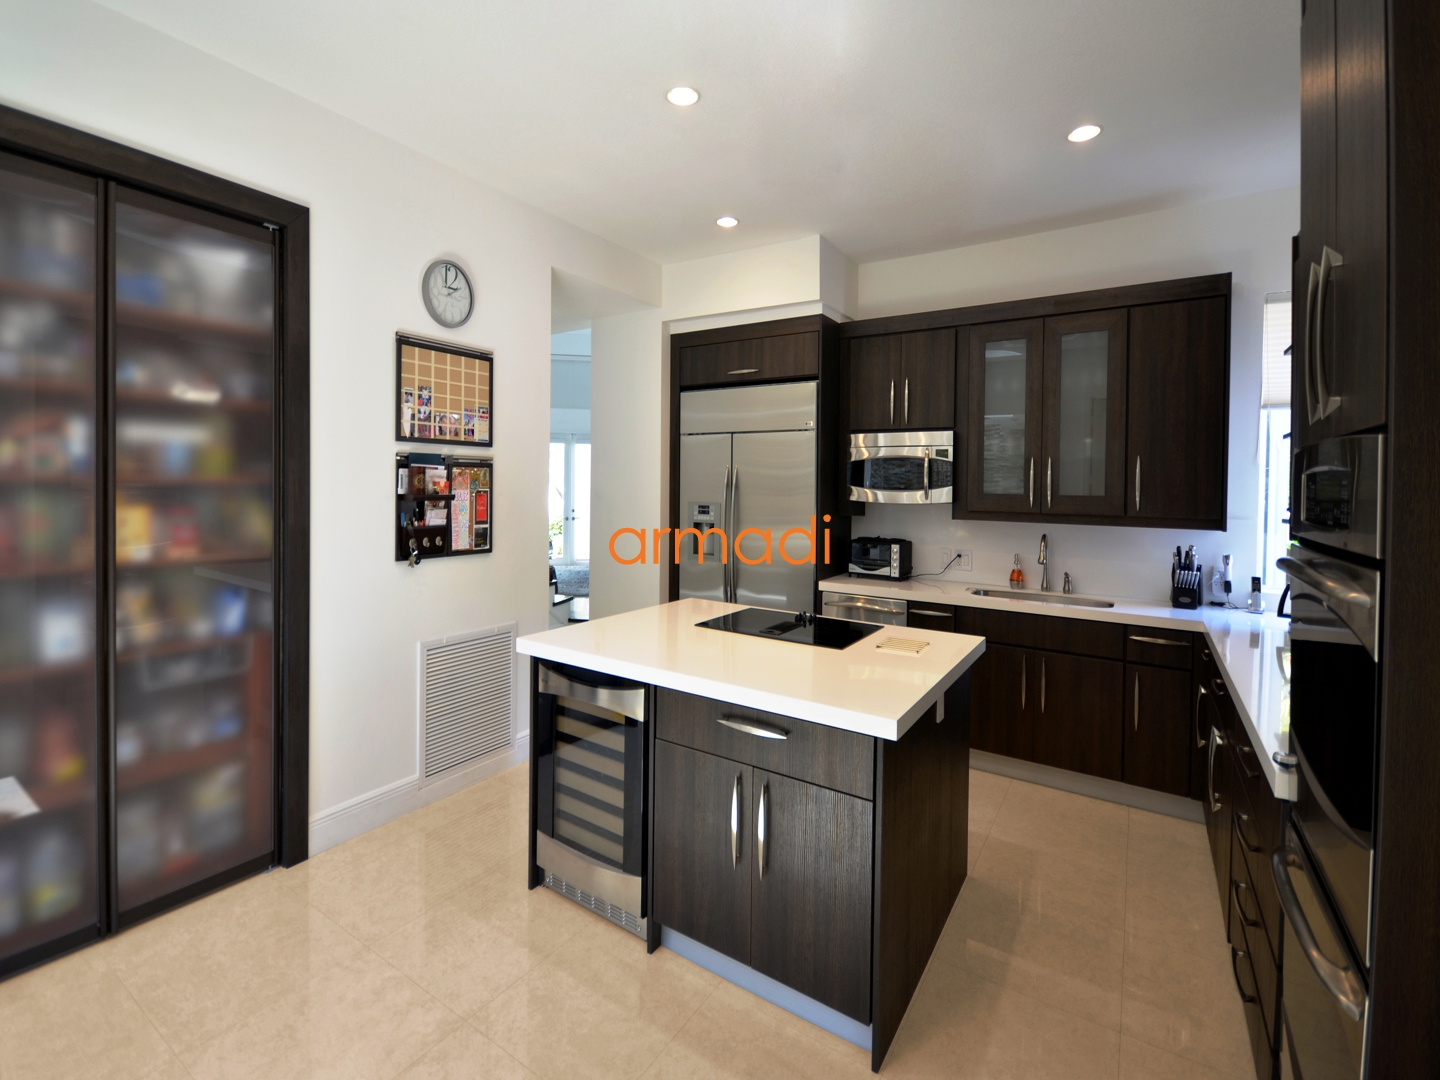 Custom kitchens by john wilkins - Holland S Custom Cabinets Serves The San Diego County Area